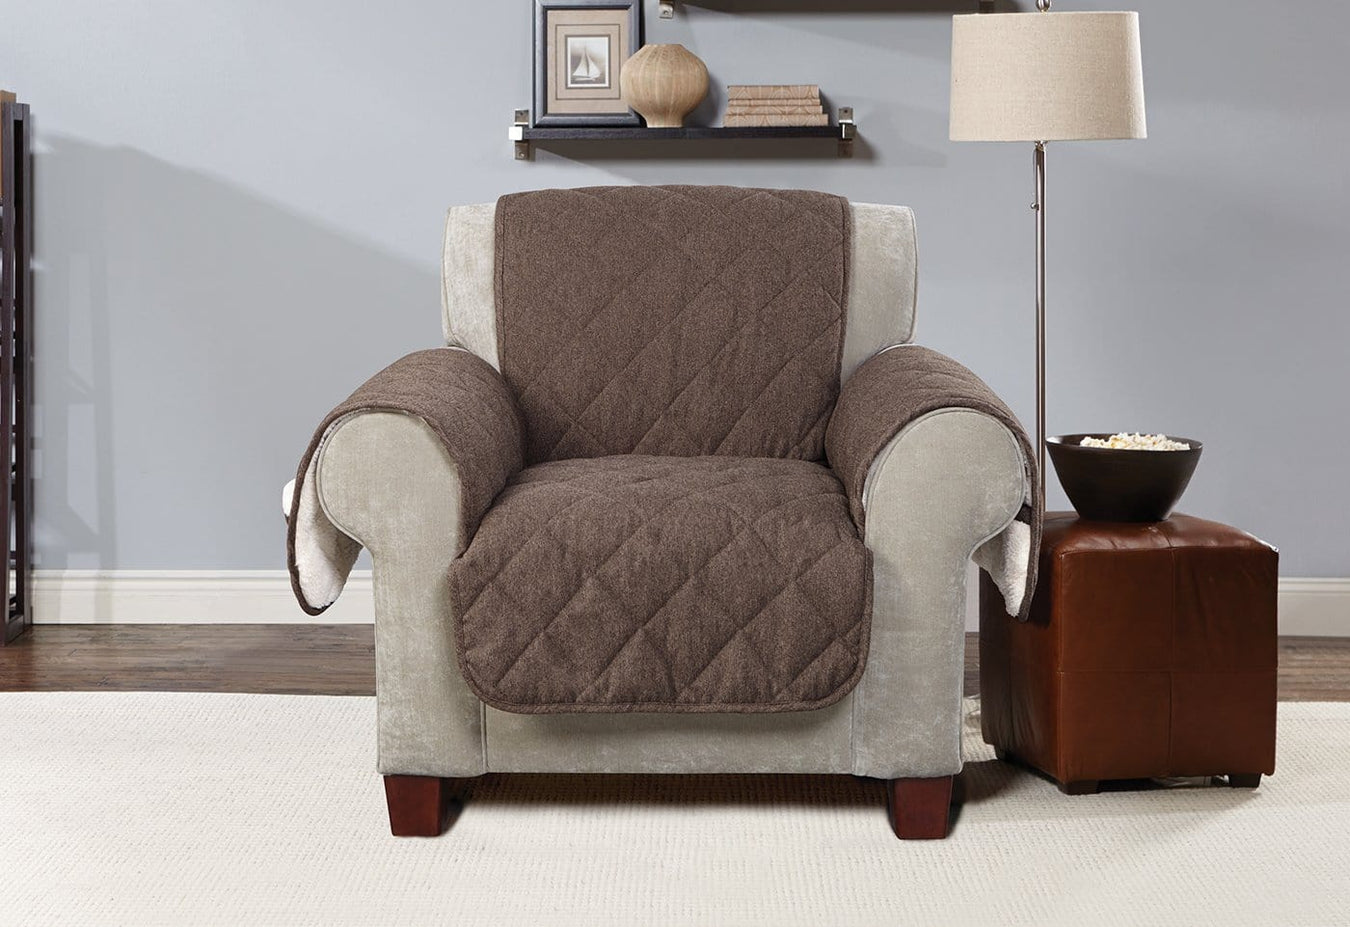 Flannel & Sherpa Chair Furniture Cover